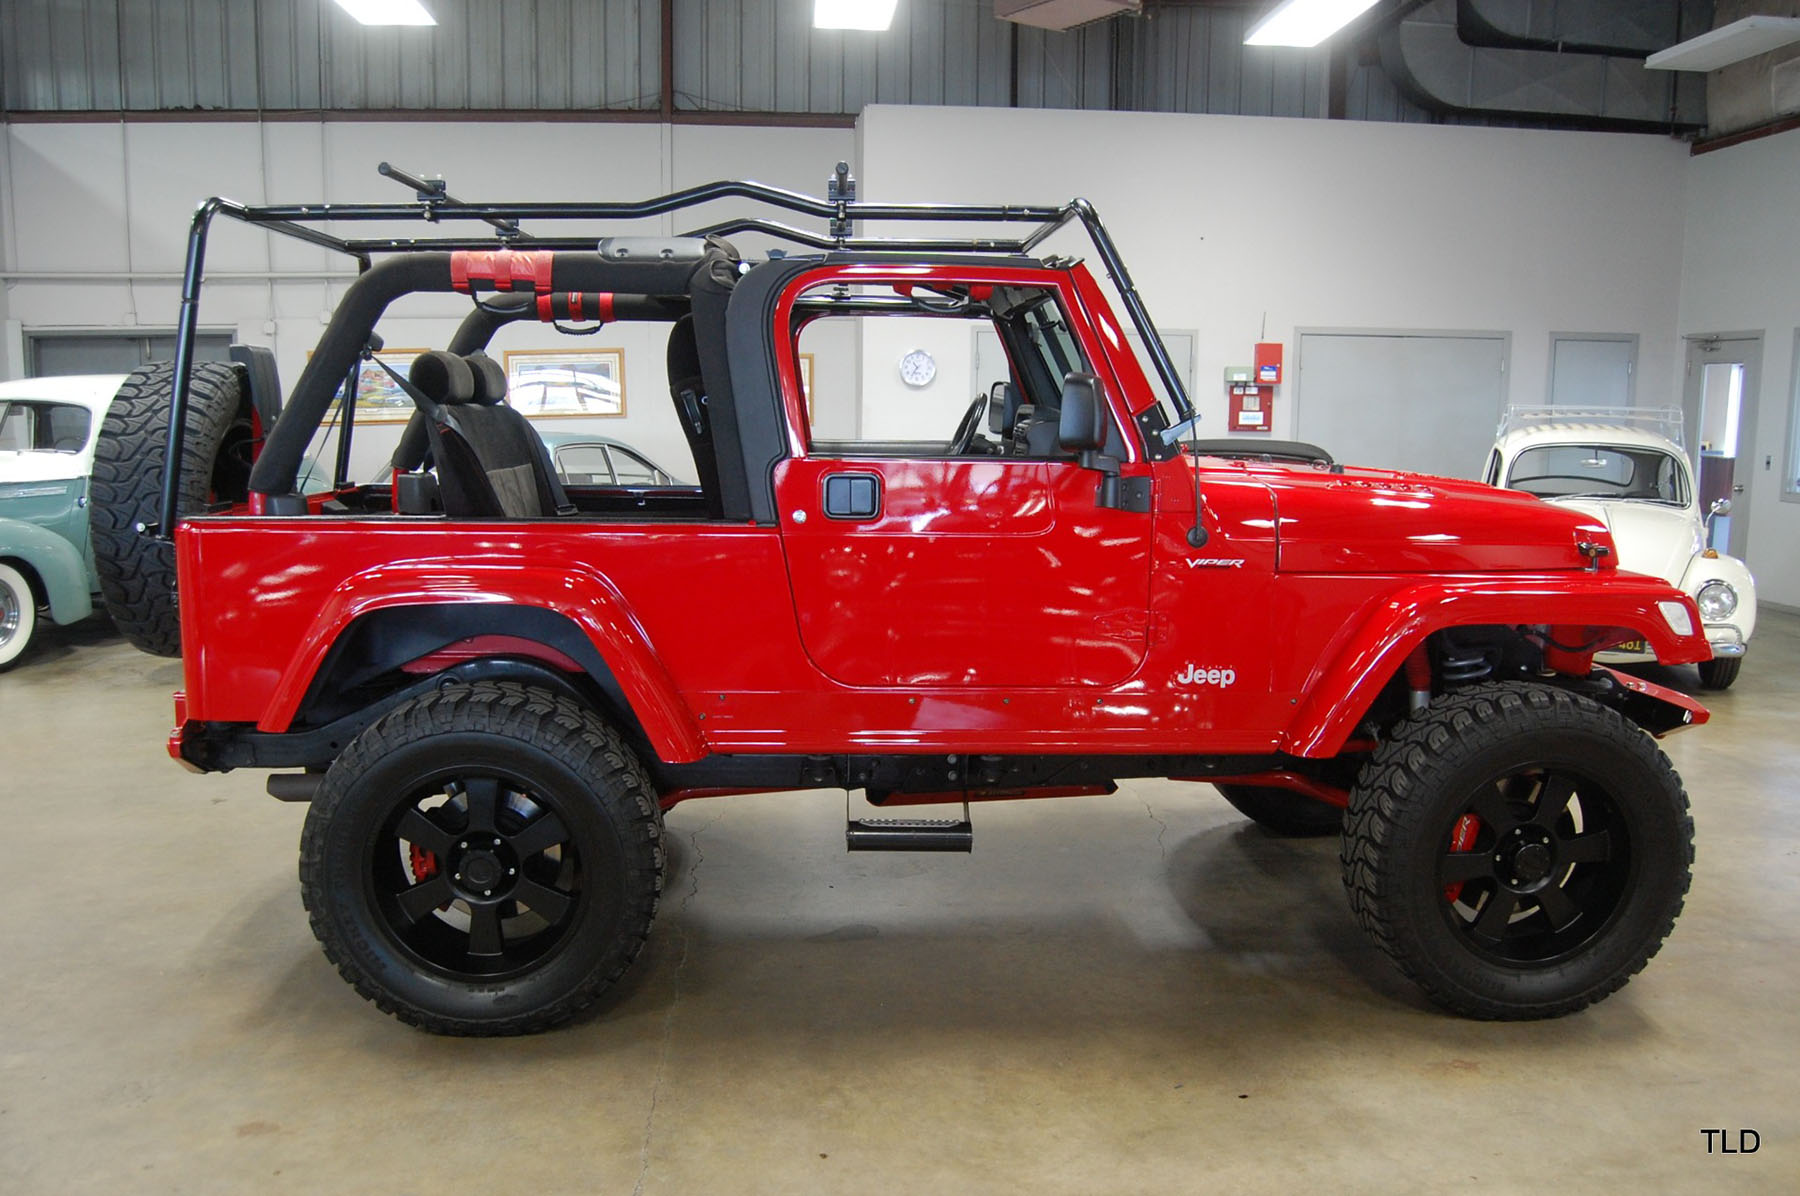 For Sale: 2005 Jeep Wrangler with a Viper V10 – Engine Swap